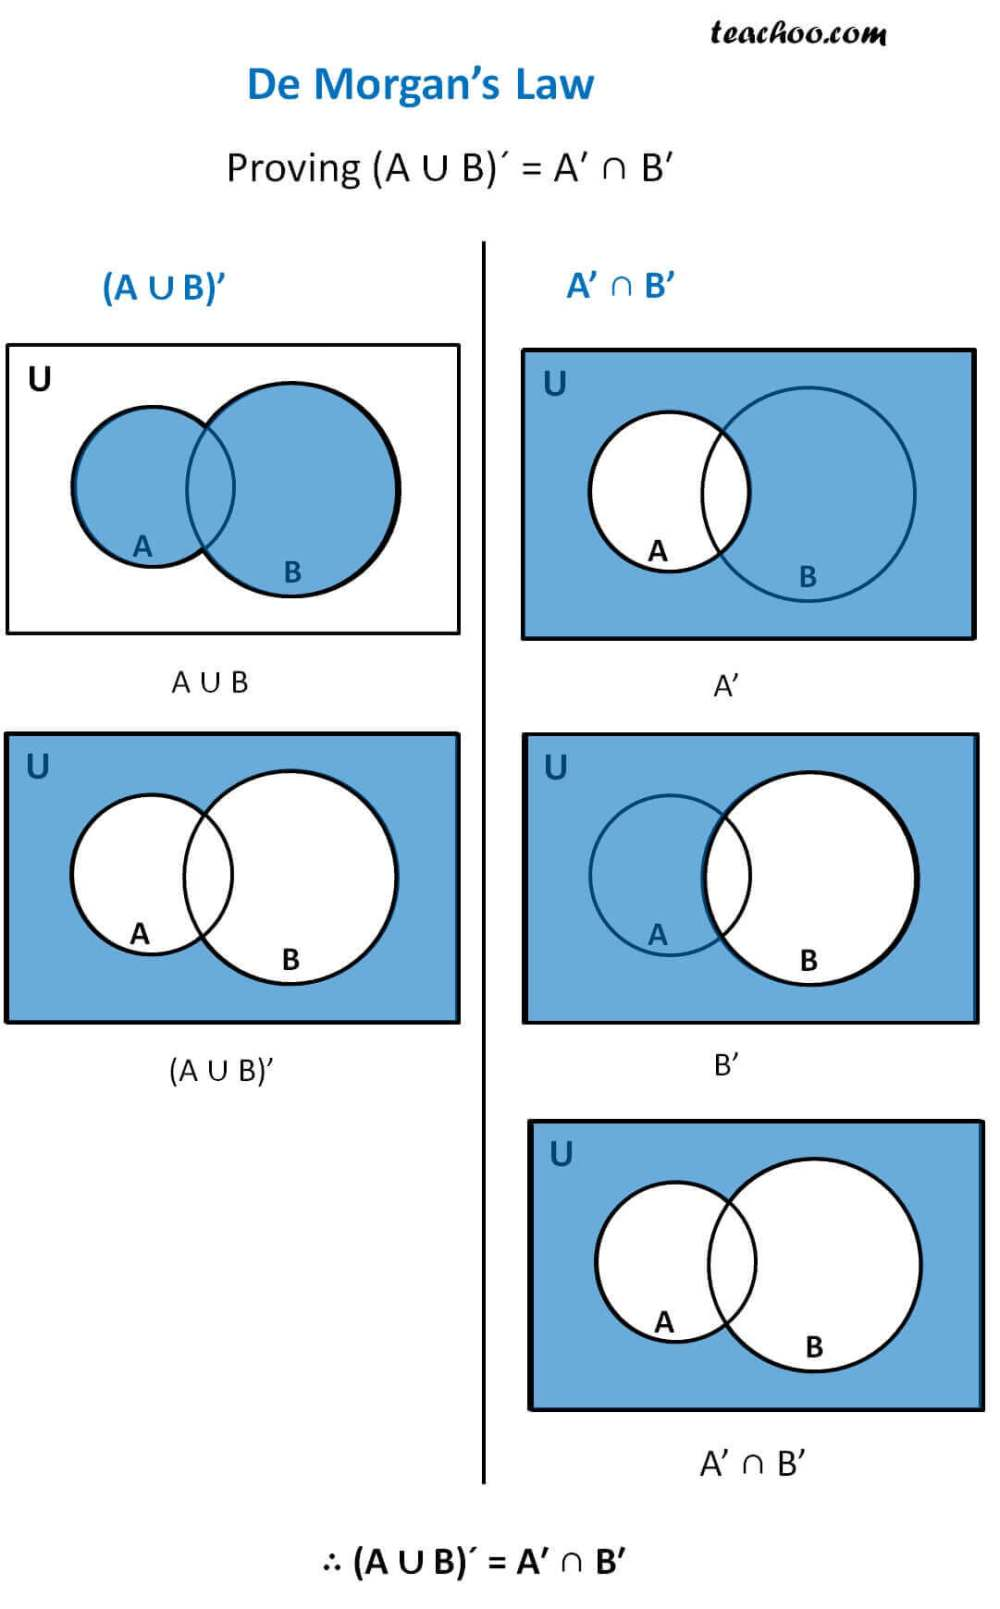 medium resolution of de morgans law proving union of complement is equal to intersection of complements jpg